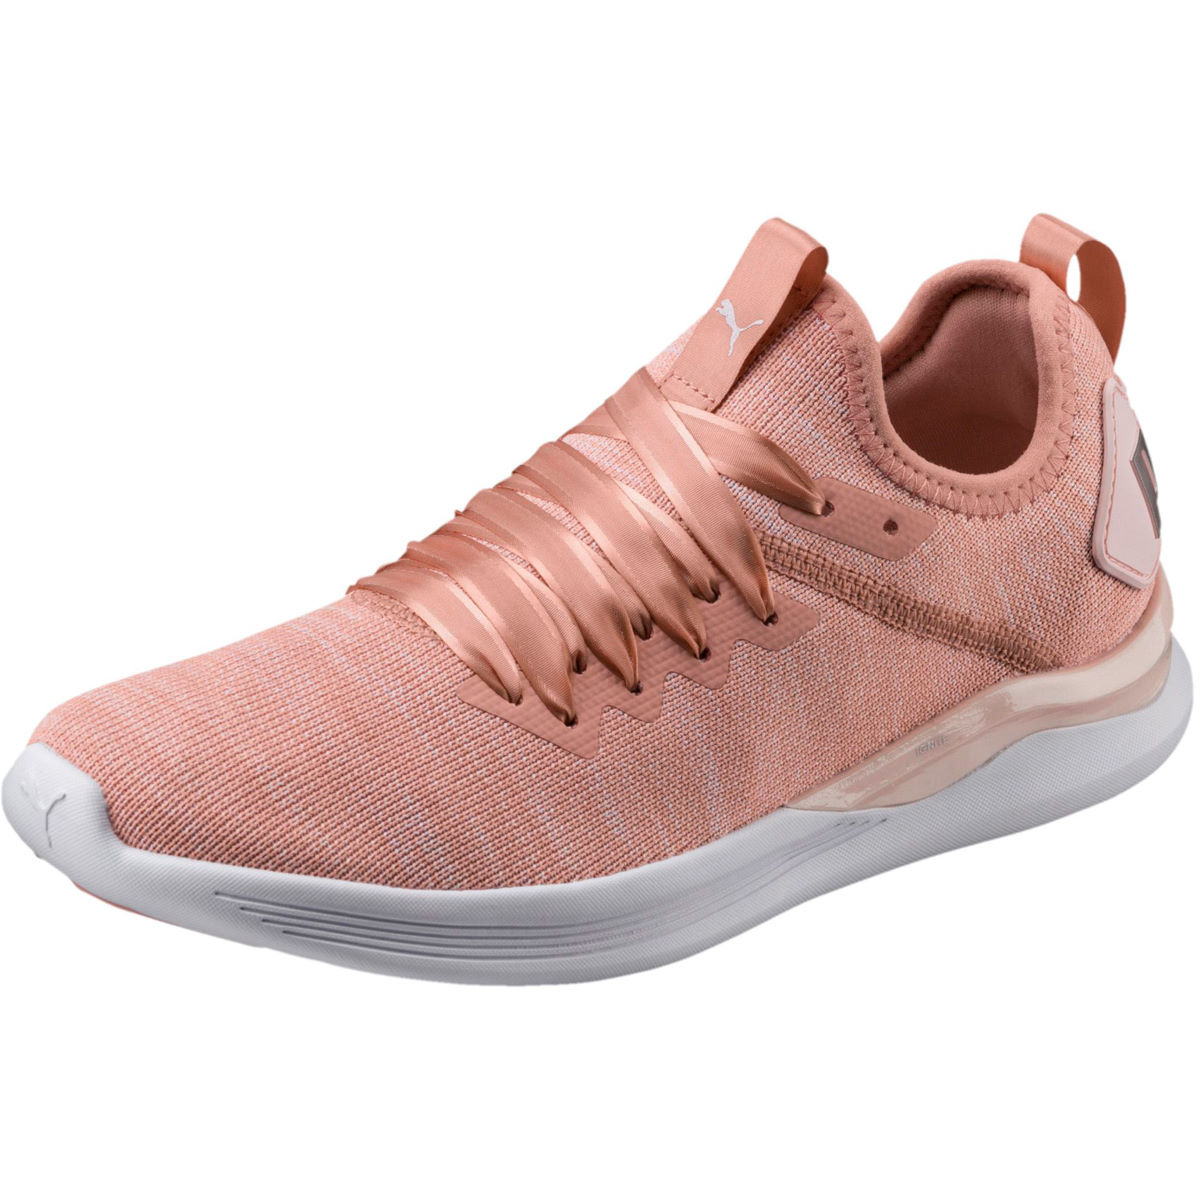 Chaussures Femme Puma Ignite Flash evoKNIT Satin EP - UK 7.5